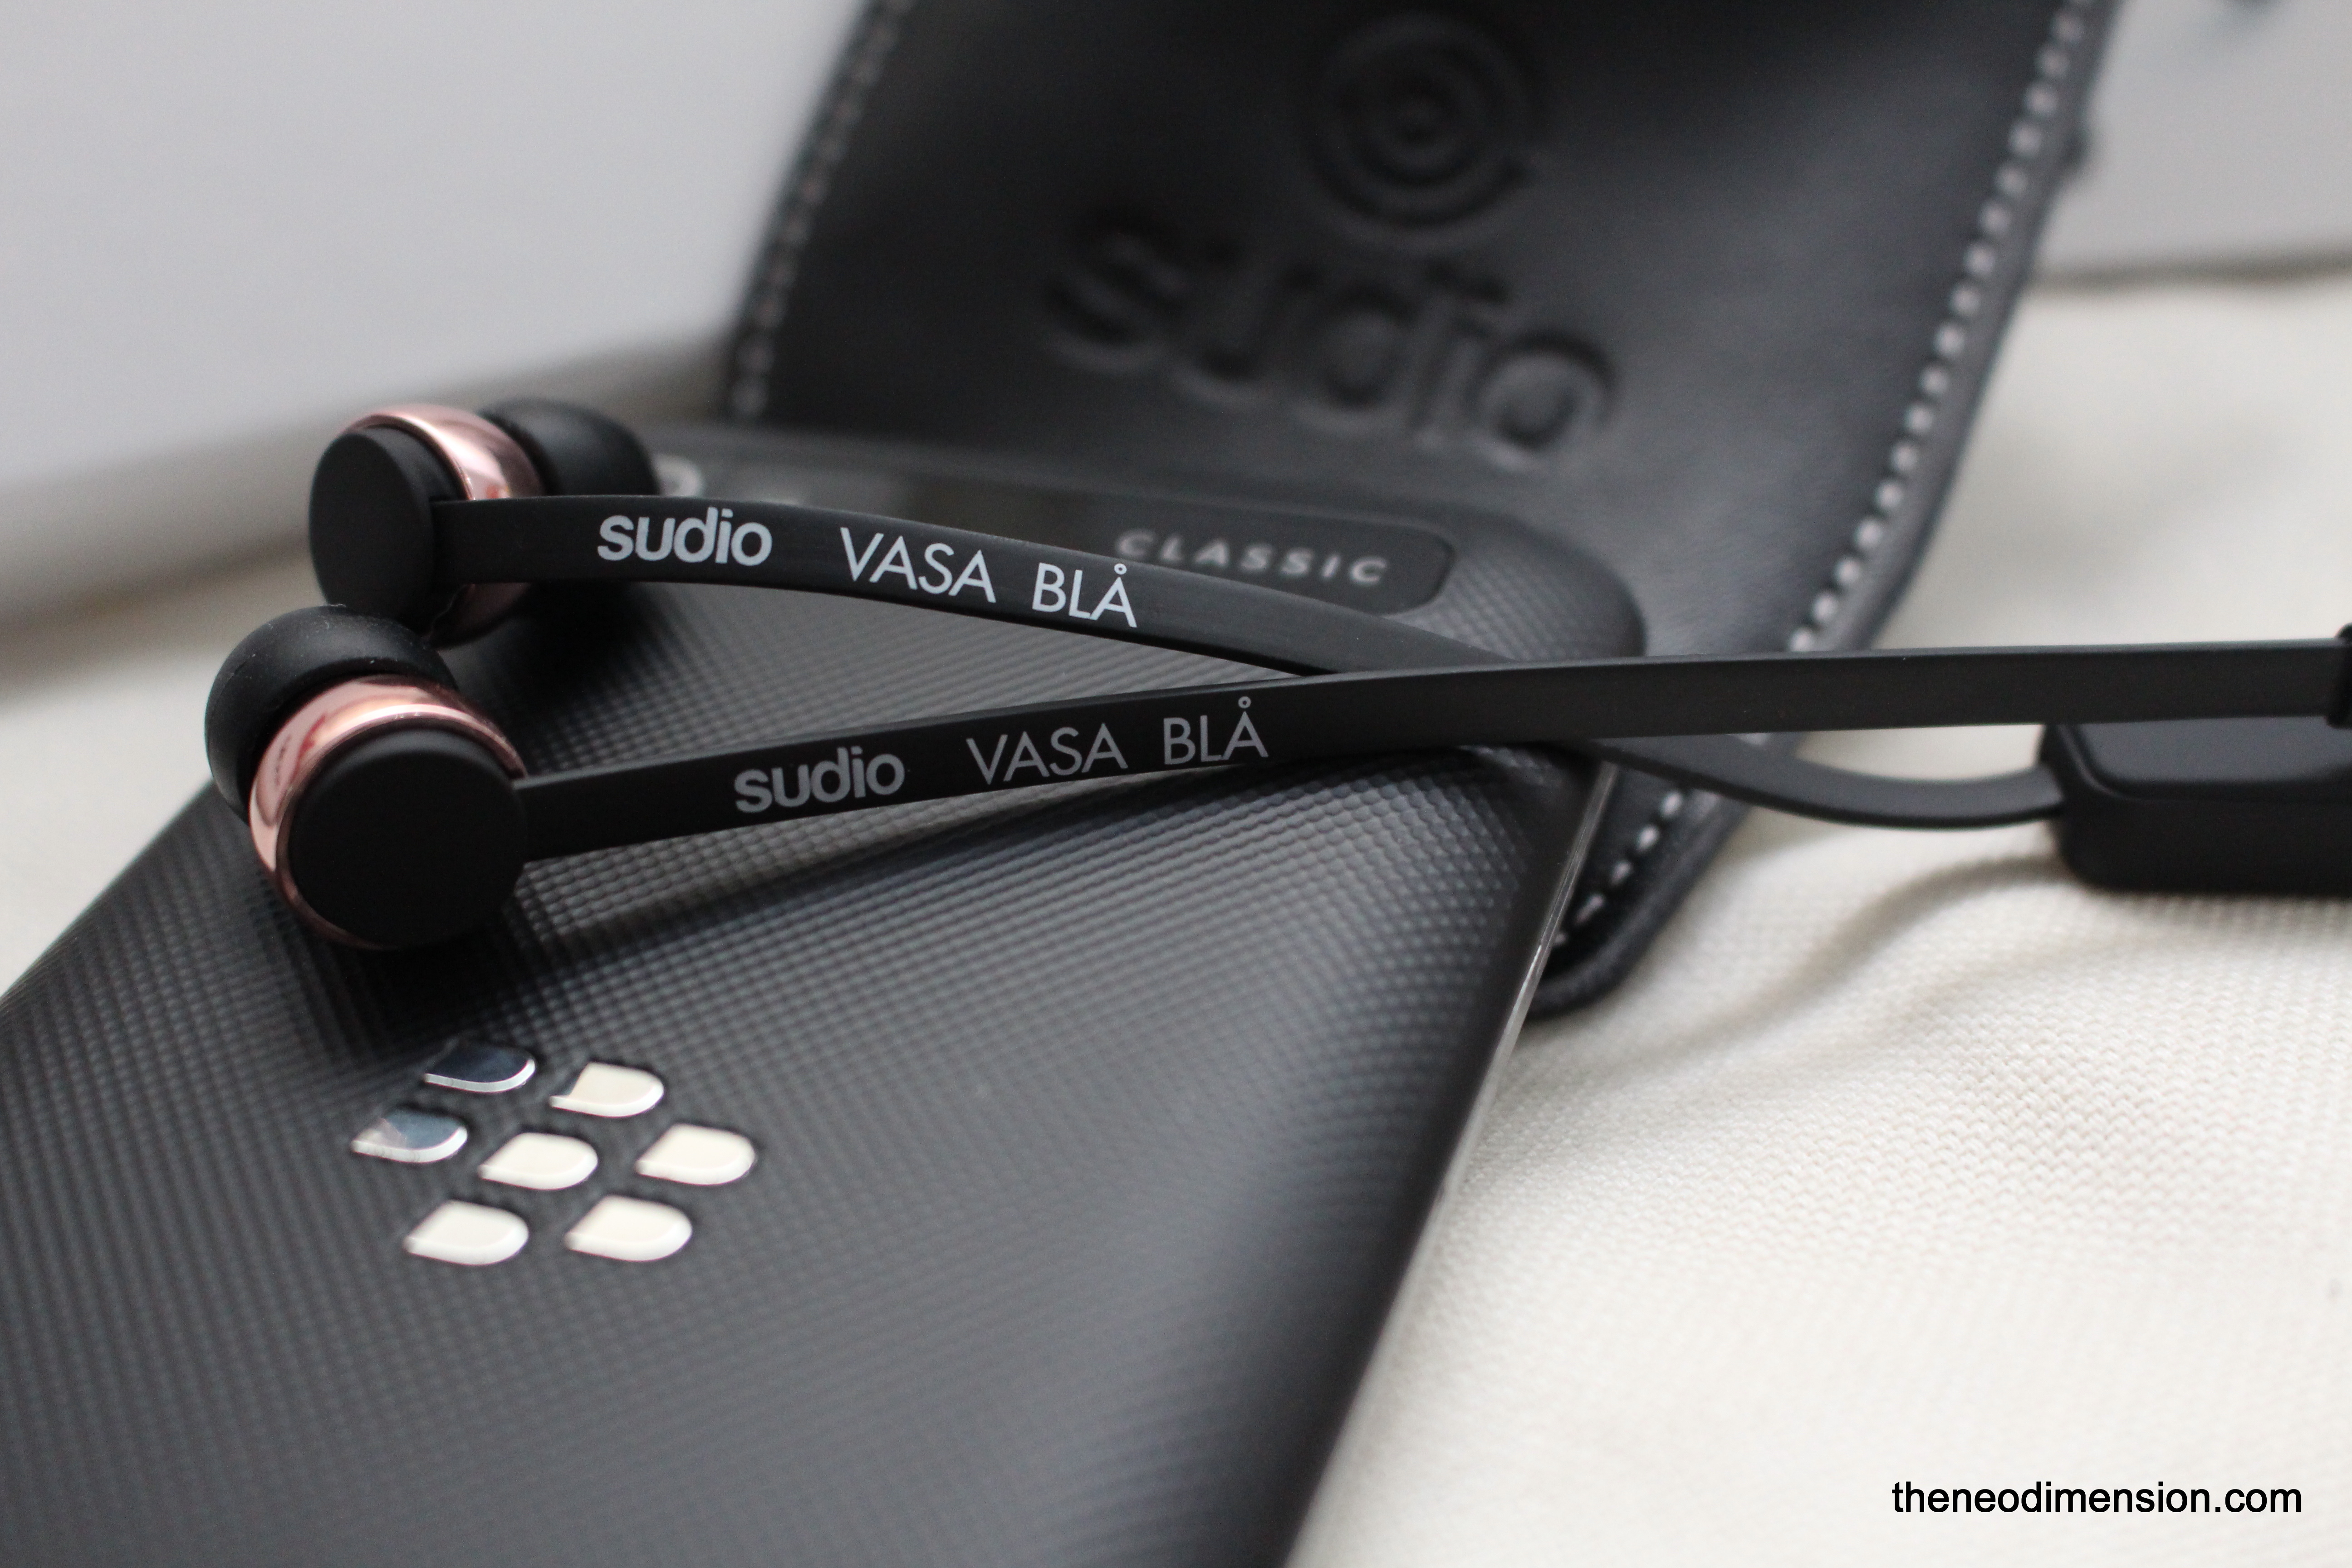 Sudio Vasa Bla and BlackBerry Classic